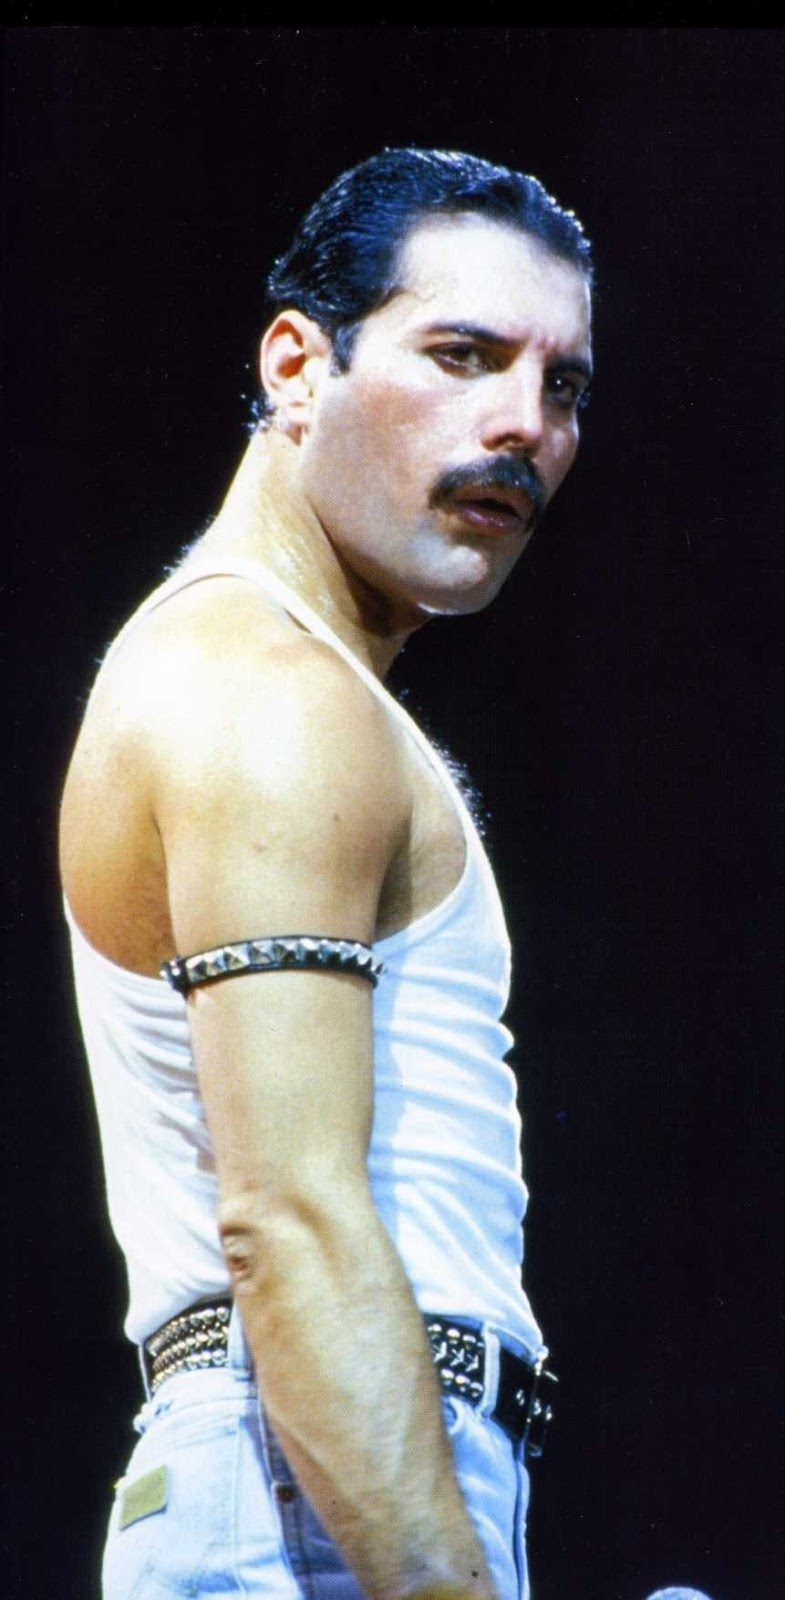 freddie mercury - photo #3